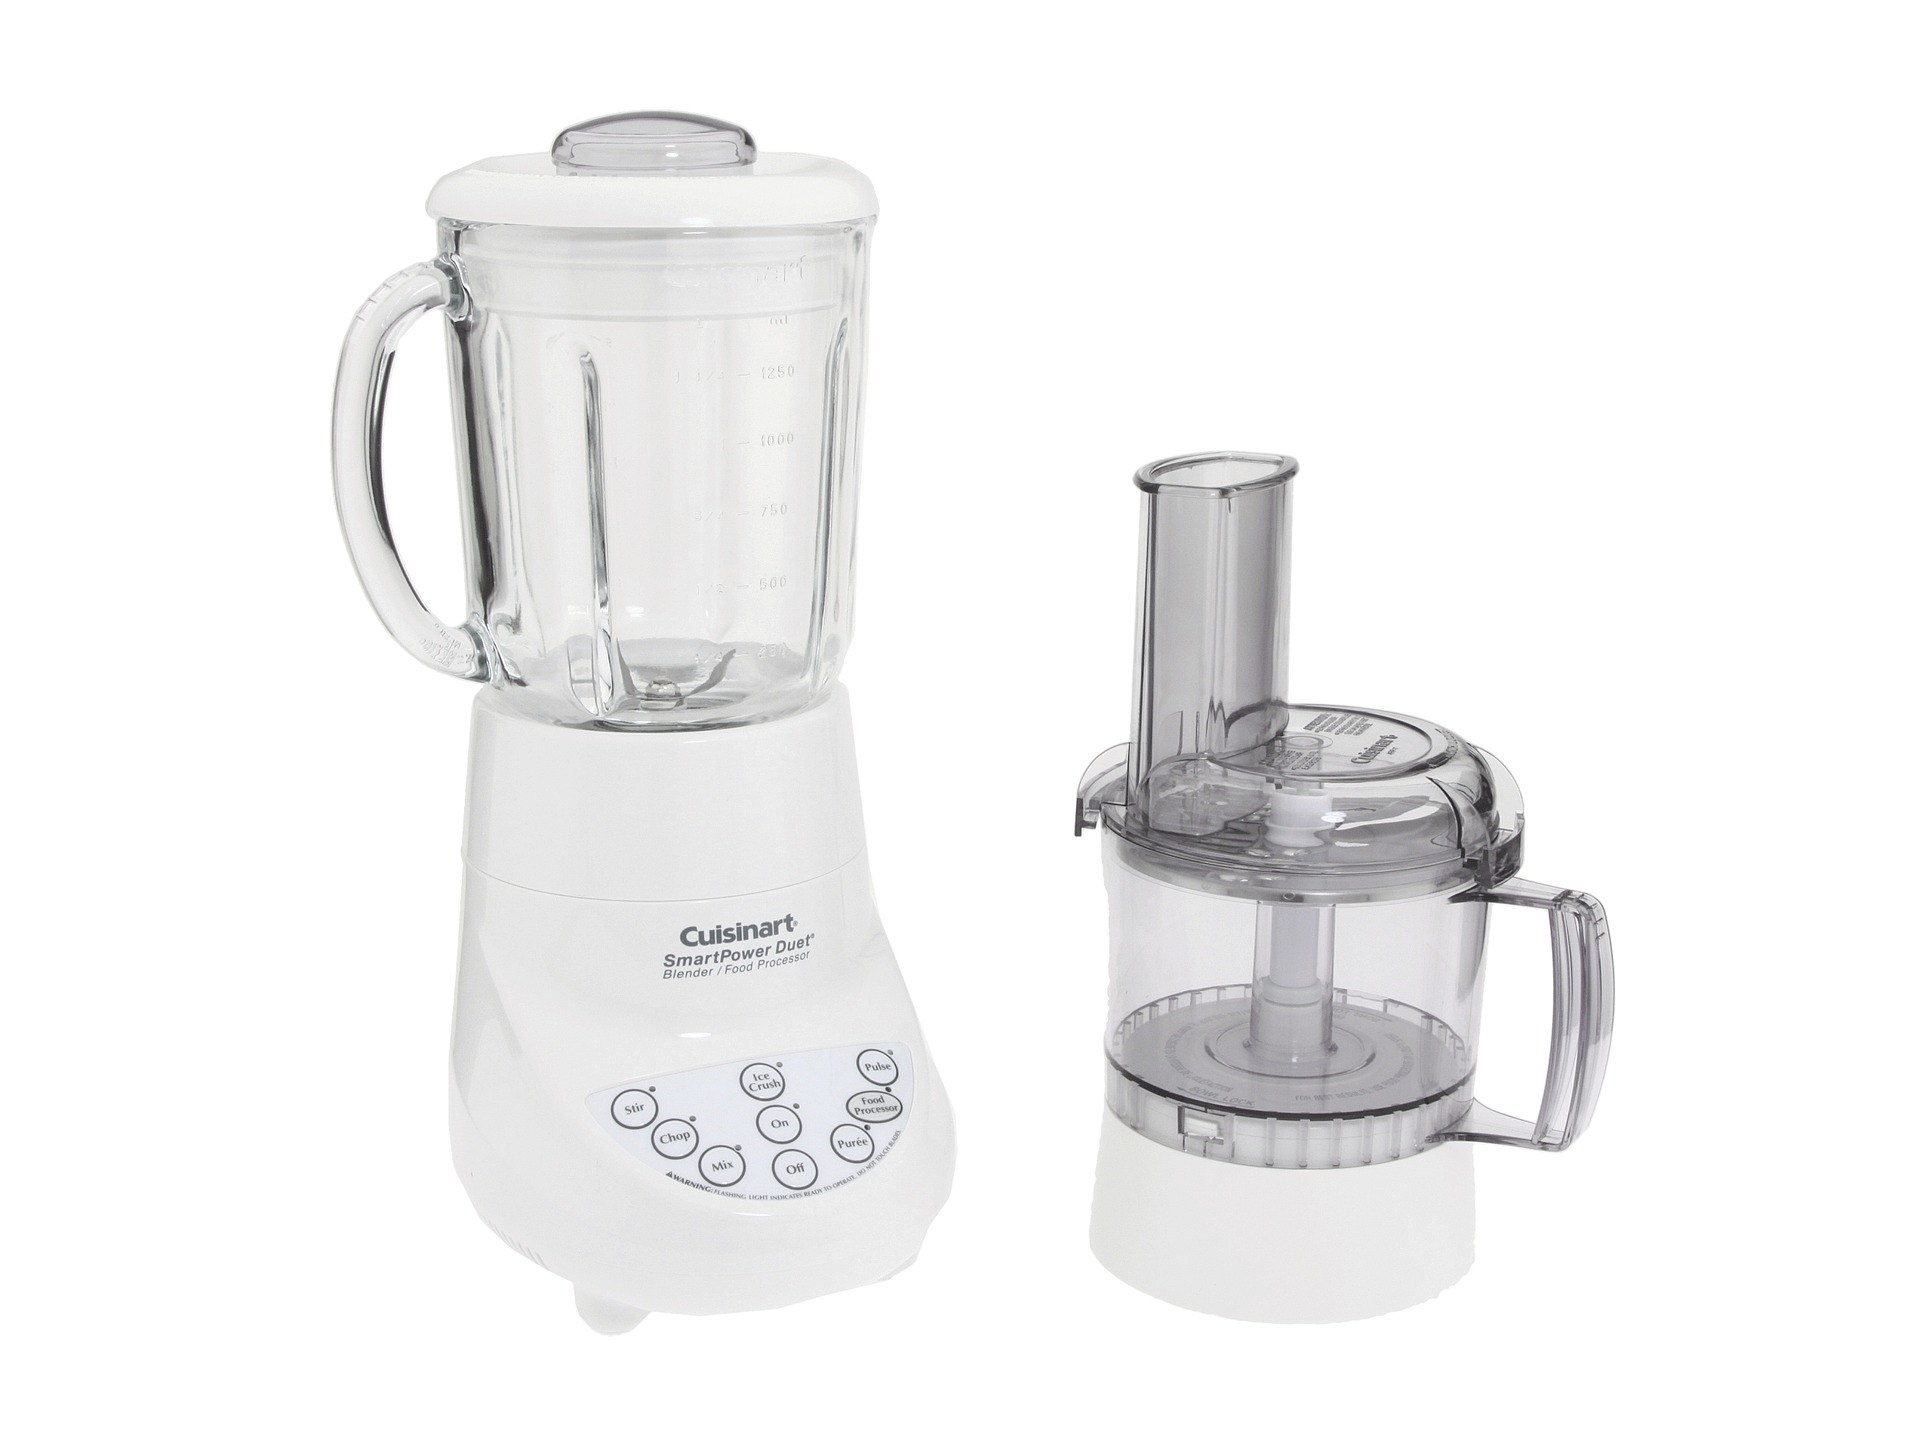 no results for cuisinart bfp 703 smartpower duet r blender. Black Bedroom Furniture Sets. Home Design Ideas